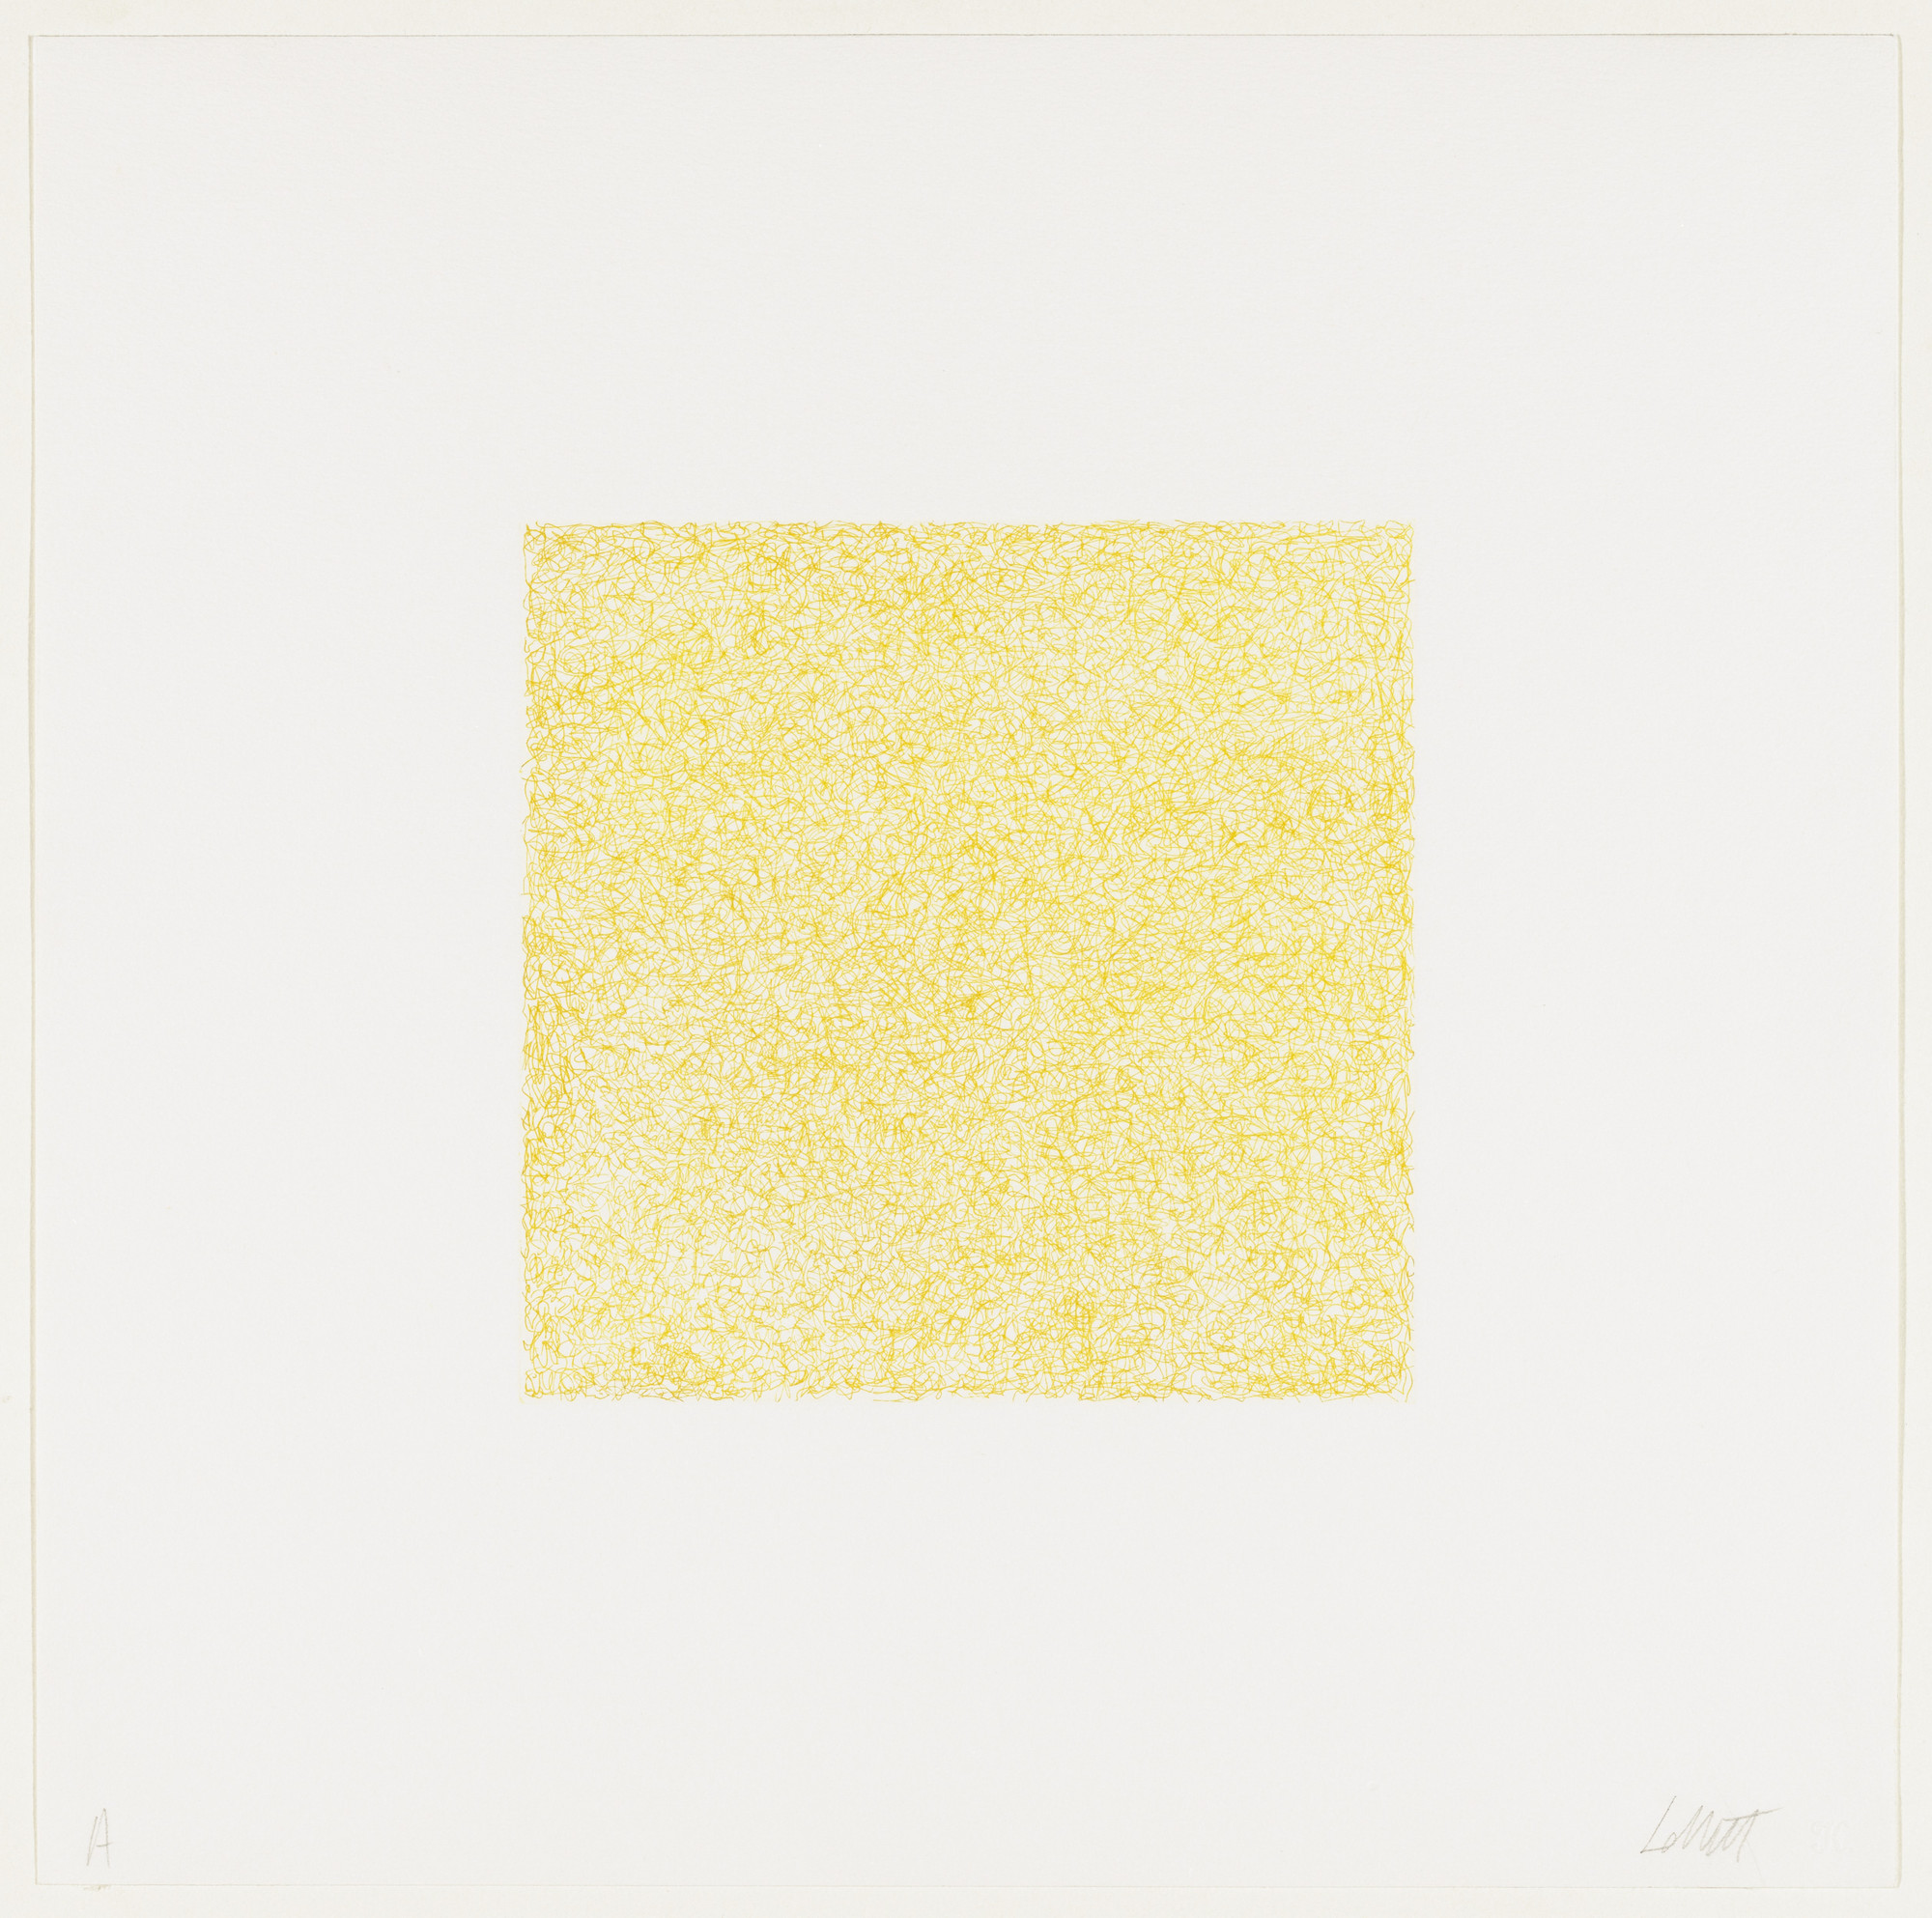 Sol LeWitt. Untitled from Scribbles printed in four directions using four colors. 1971